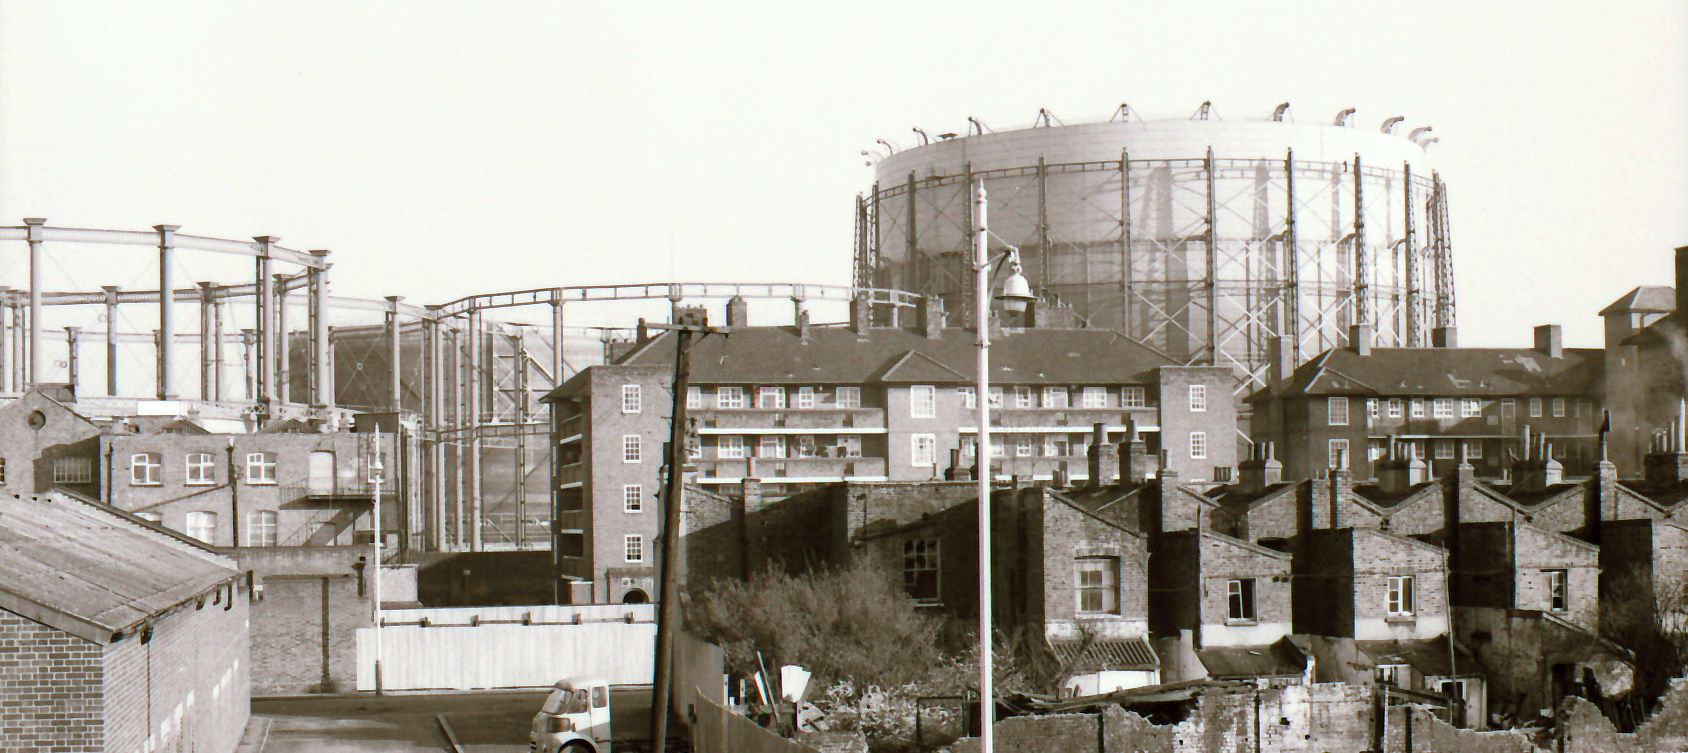 Kennington Oval gas holders in use, Jan 1975. From left, part of frames of 4 and 5; frameless 2, raised but obscured, behind; frame of 3, since demolished; full 1, 'flying' above the frame